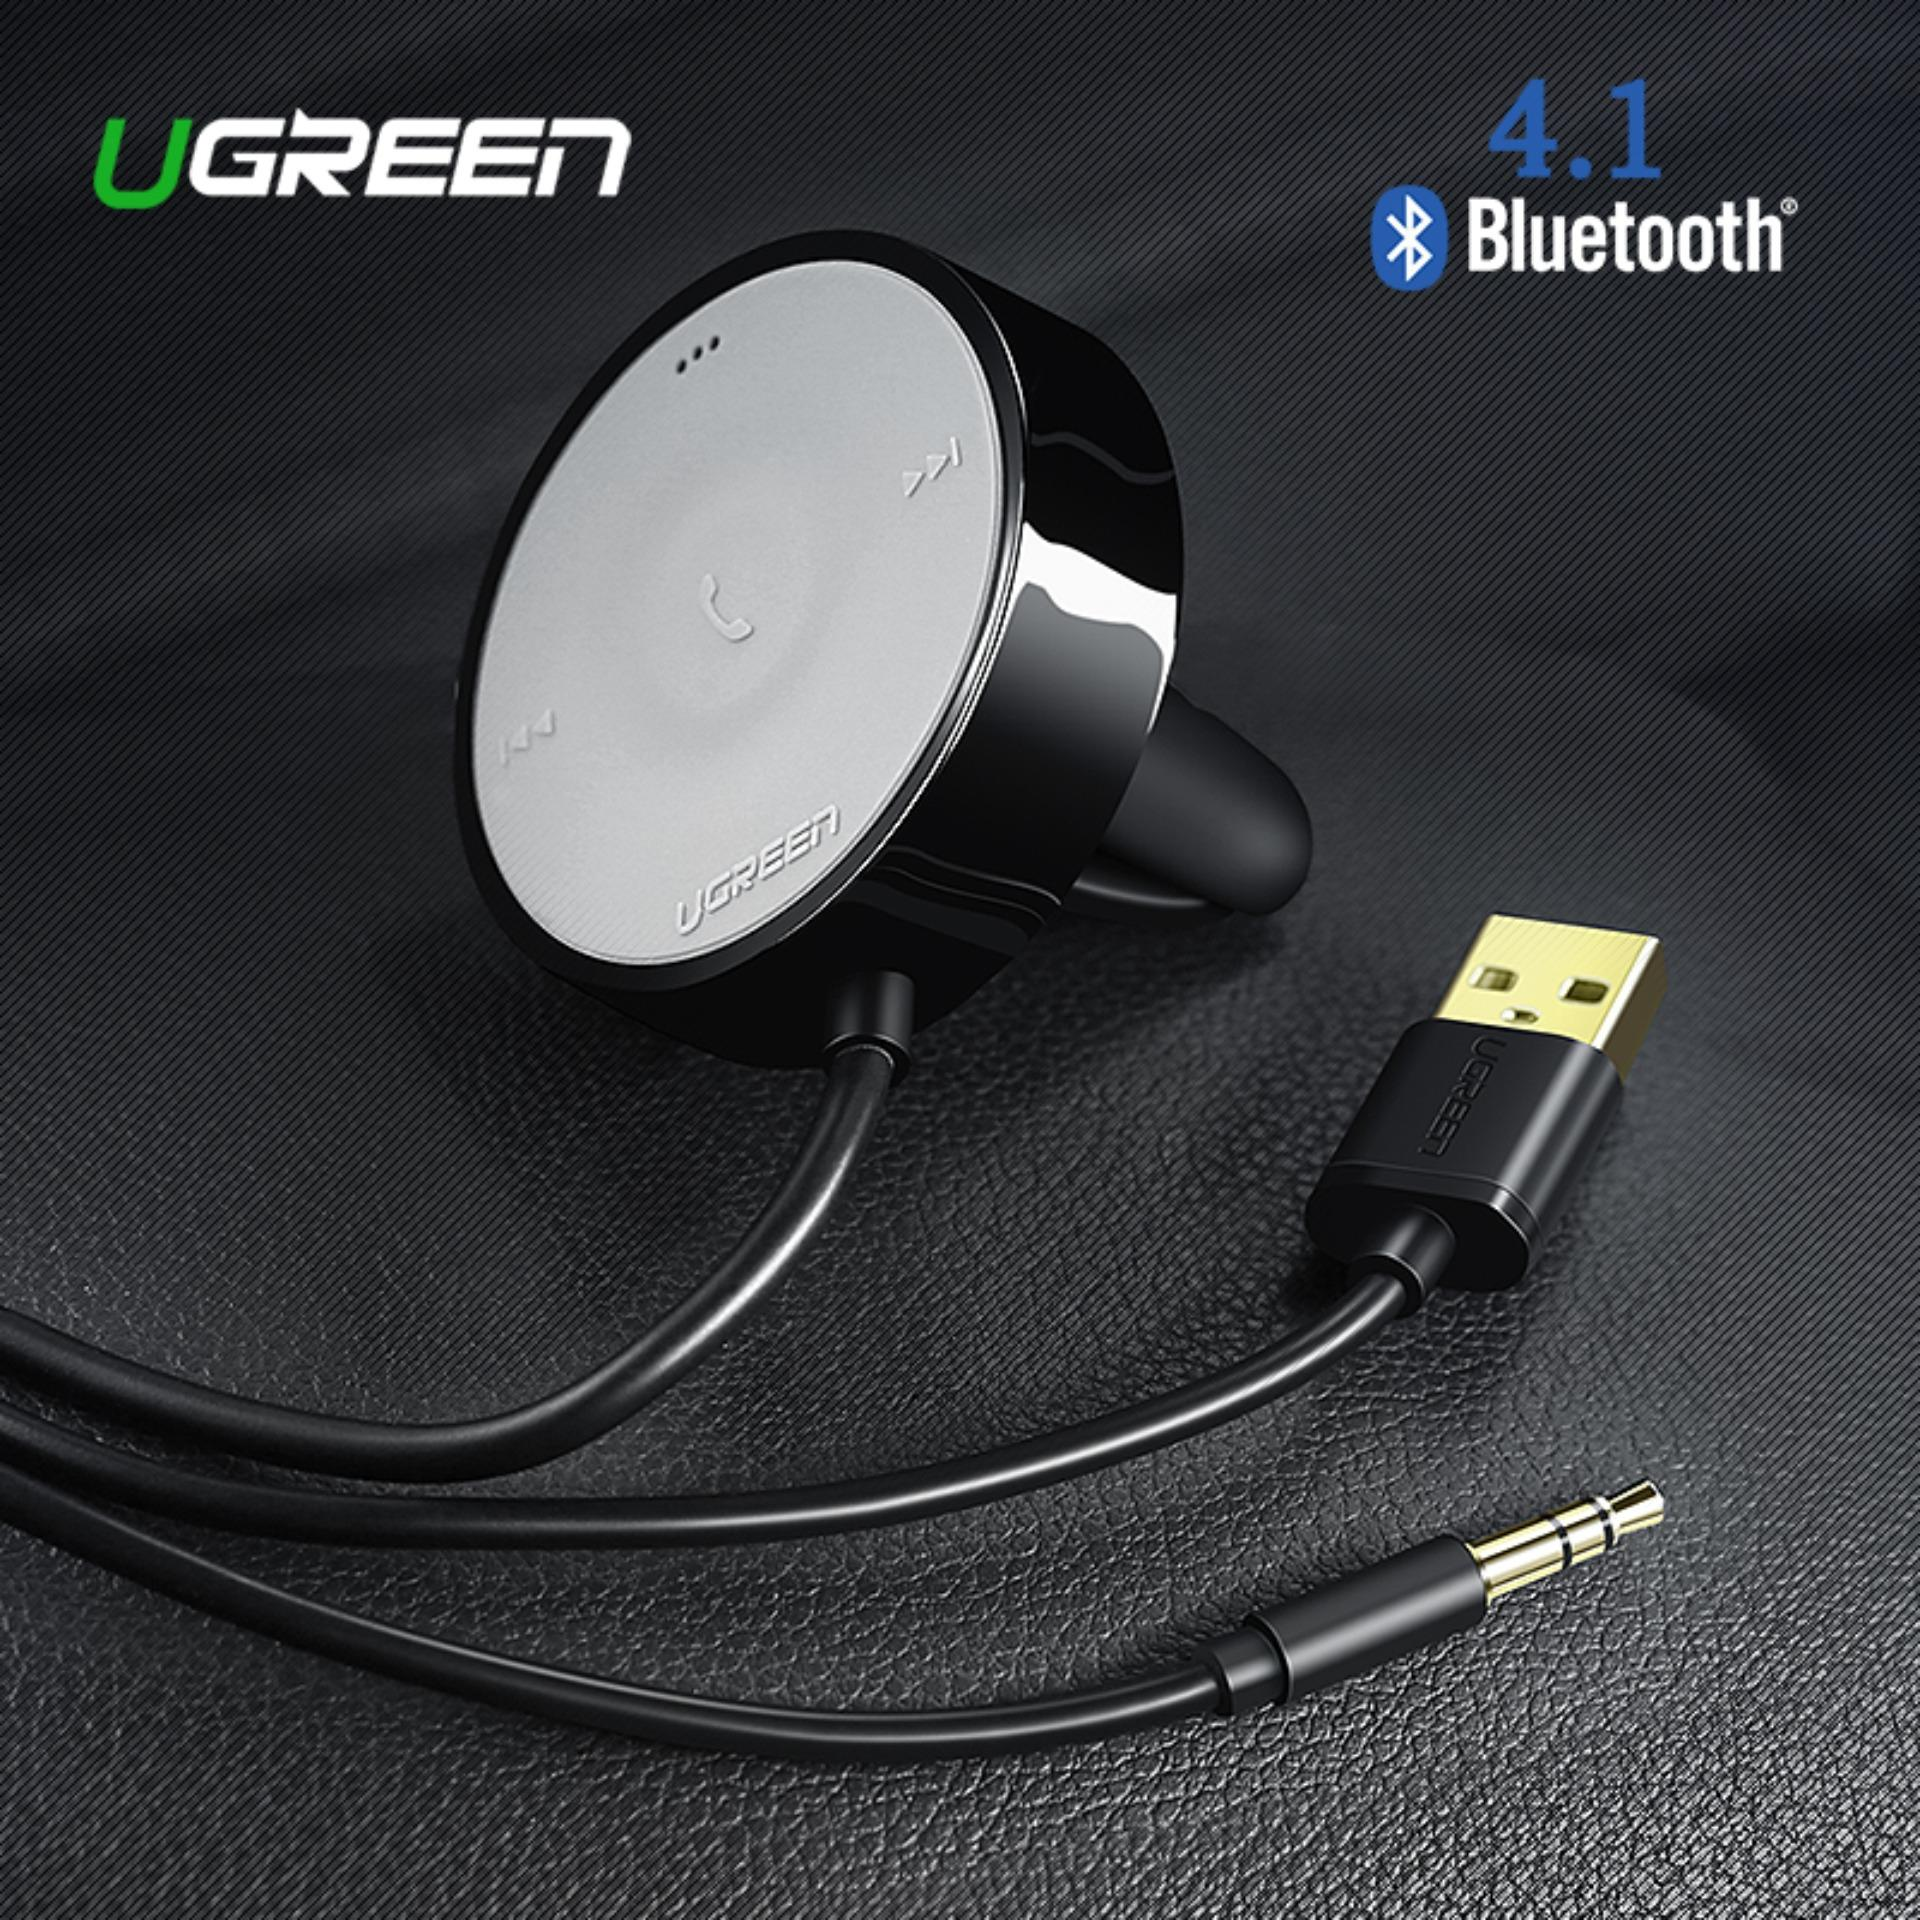 Ugreen Usb Bluetooth Receiver Car Kit Adapter 4.1 Wireless Speaker Audio Cable Free For Usb Car Charger For Iphone Handsfree-Black By Ugreen Flagship Store.